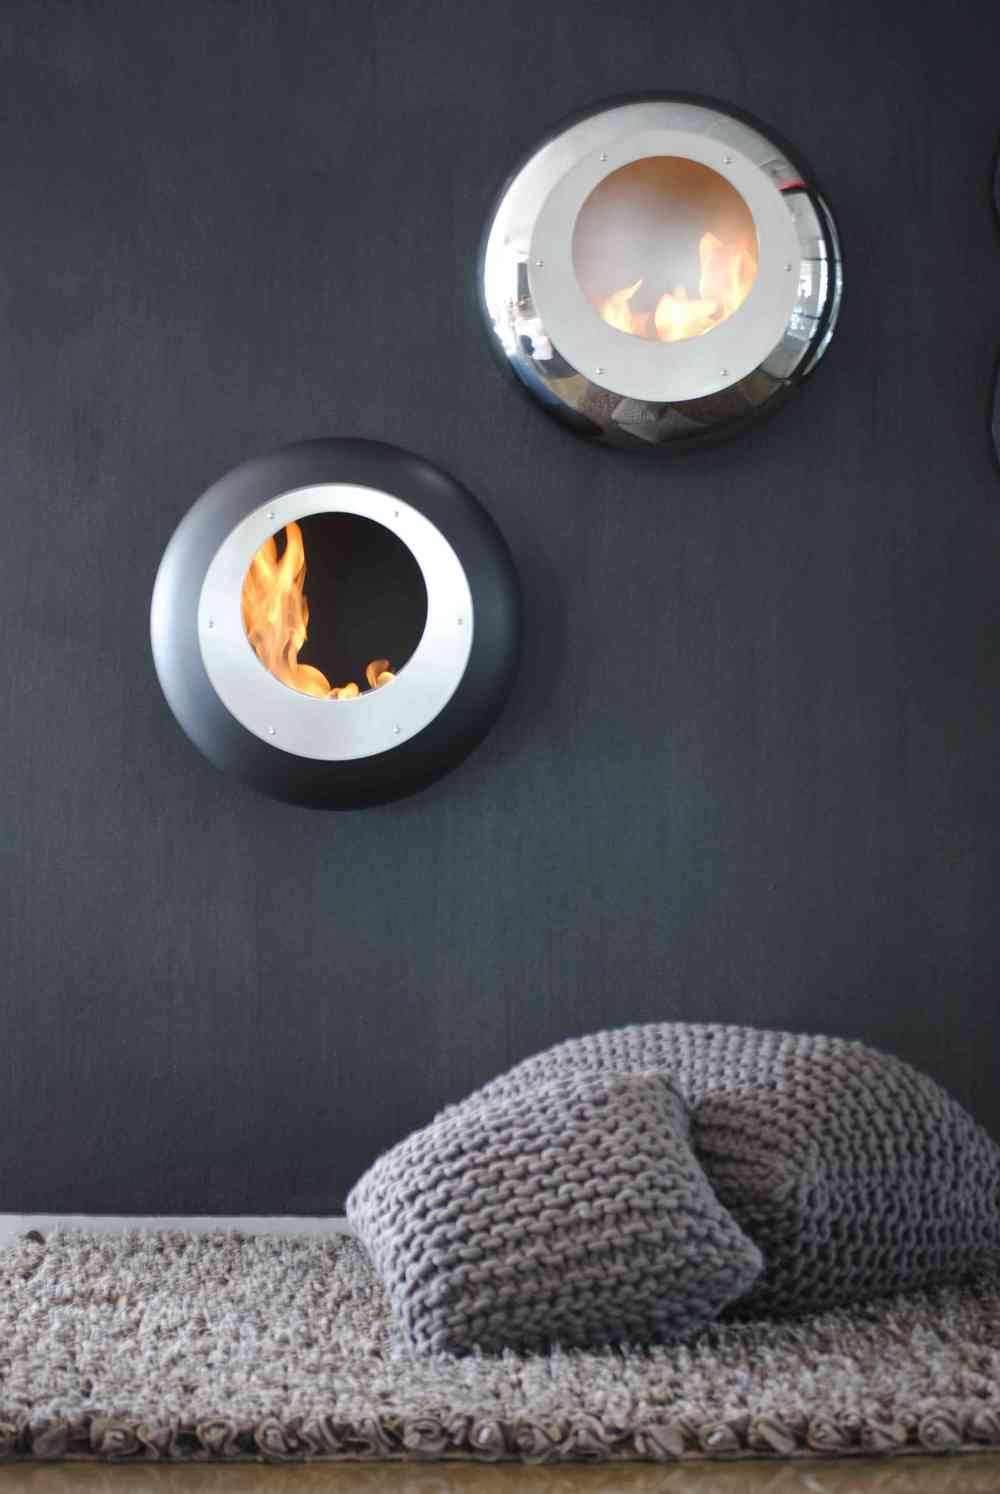 Cocoon's wall-mounted fireplaces